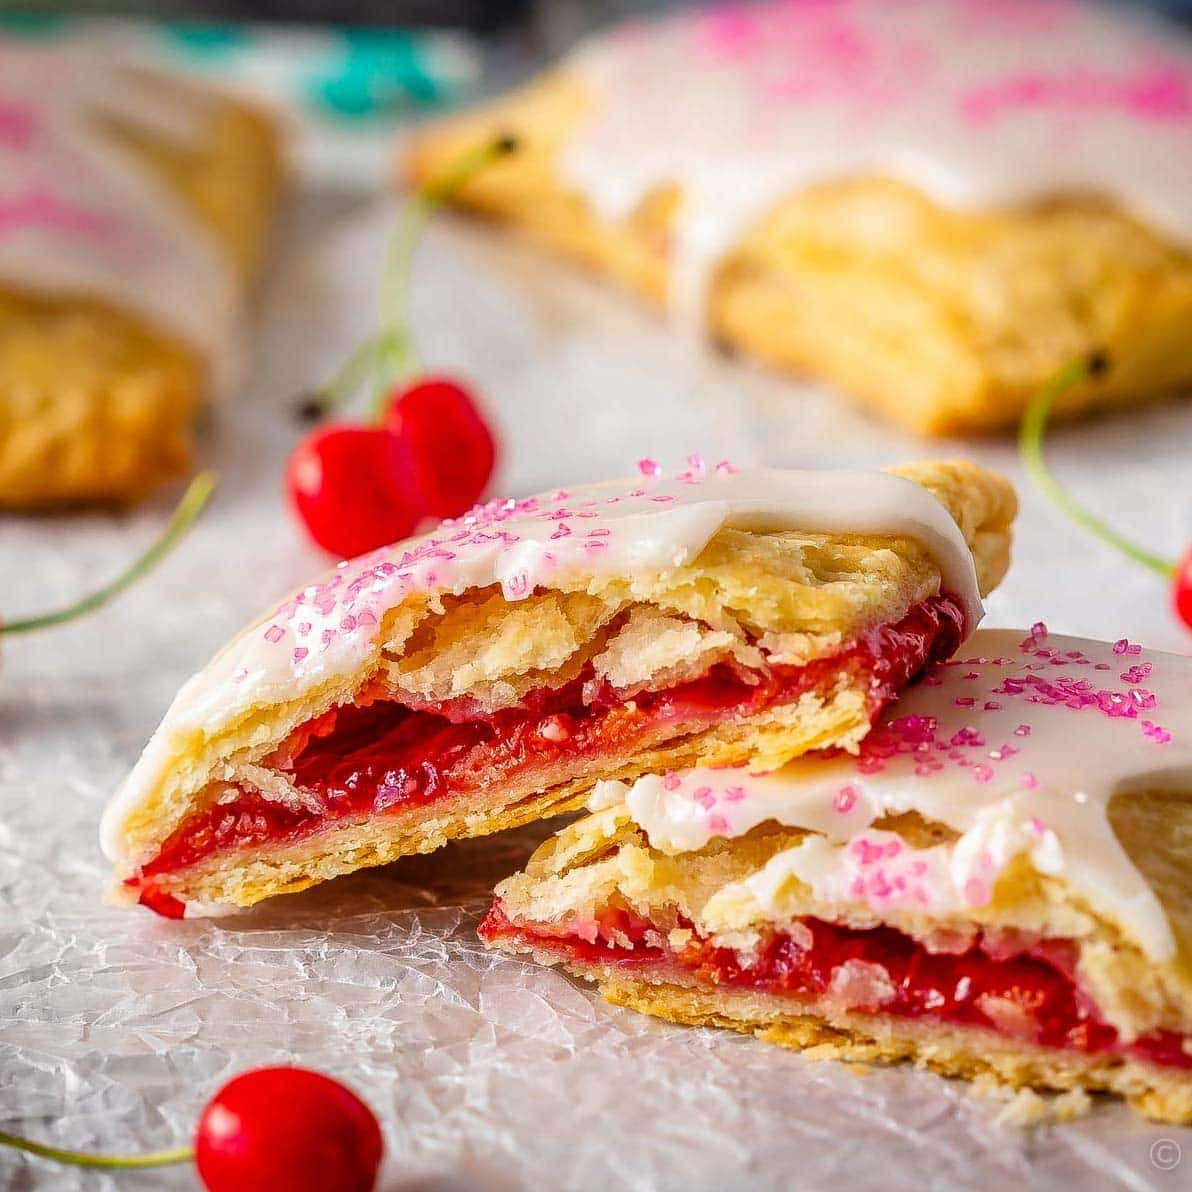 These cherry pop tarts are easy to make, and make the best dessert or snack. Flaky homemade pastry wrapped around a sweet cherry filling - so good!